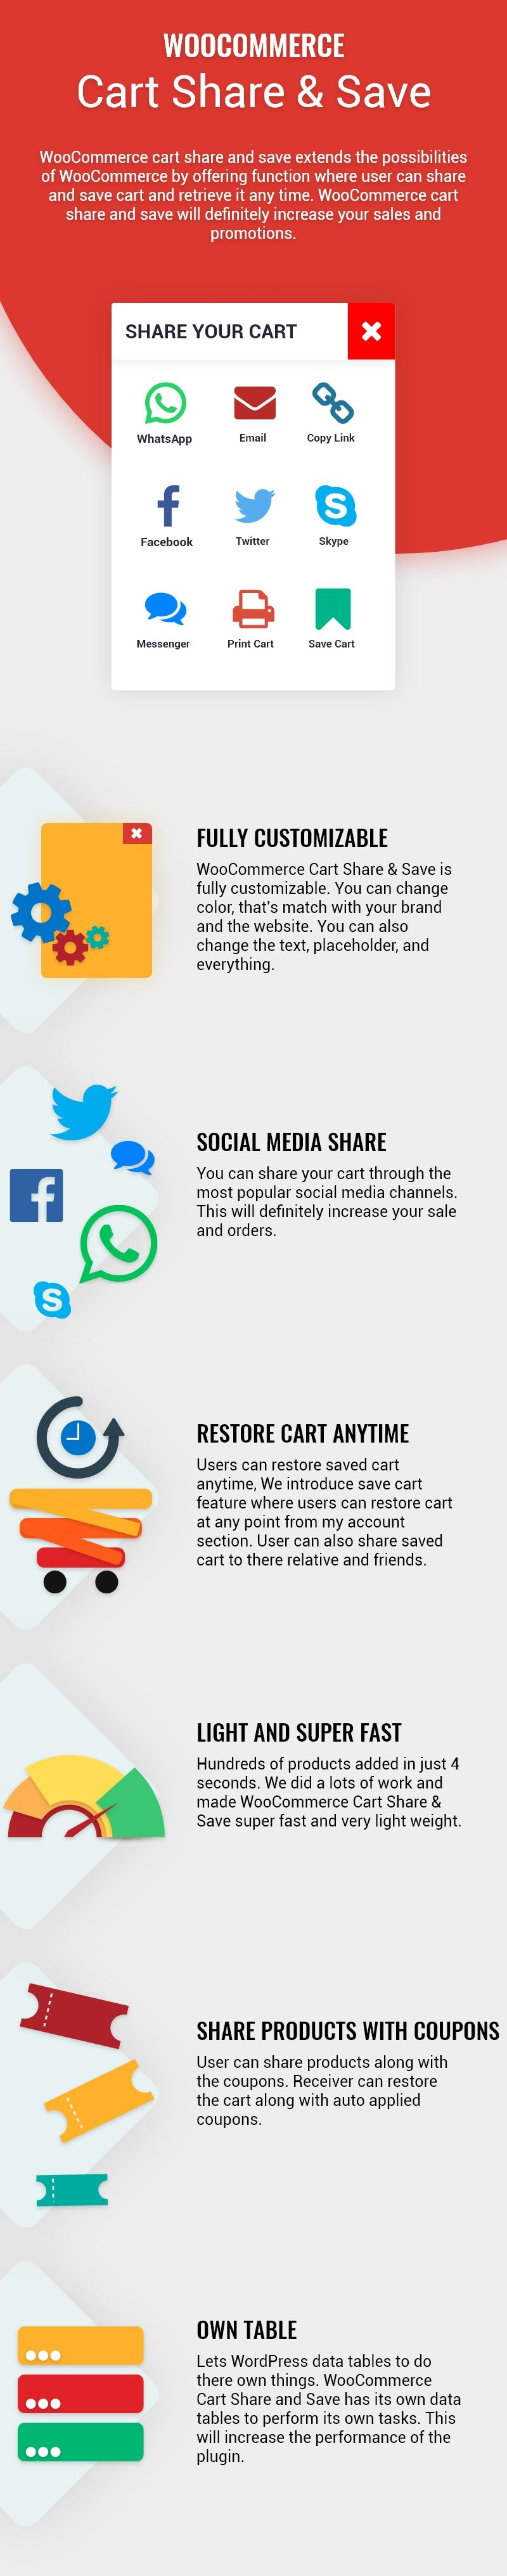 WooCommerce Cart Shave & Share - Infographic